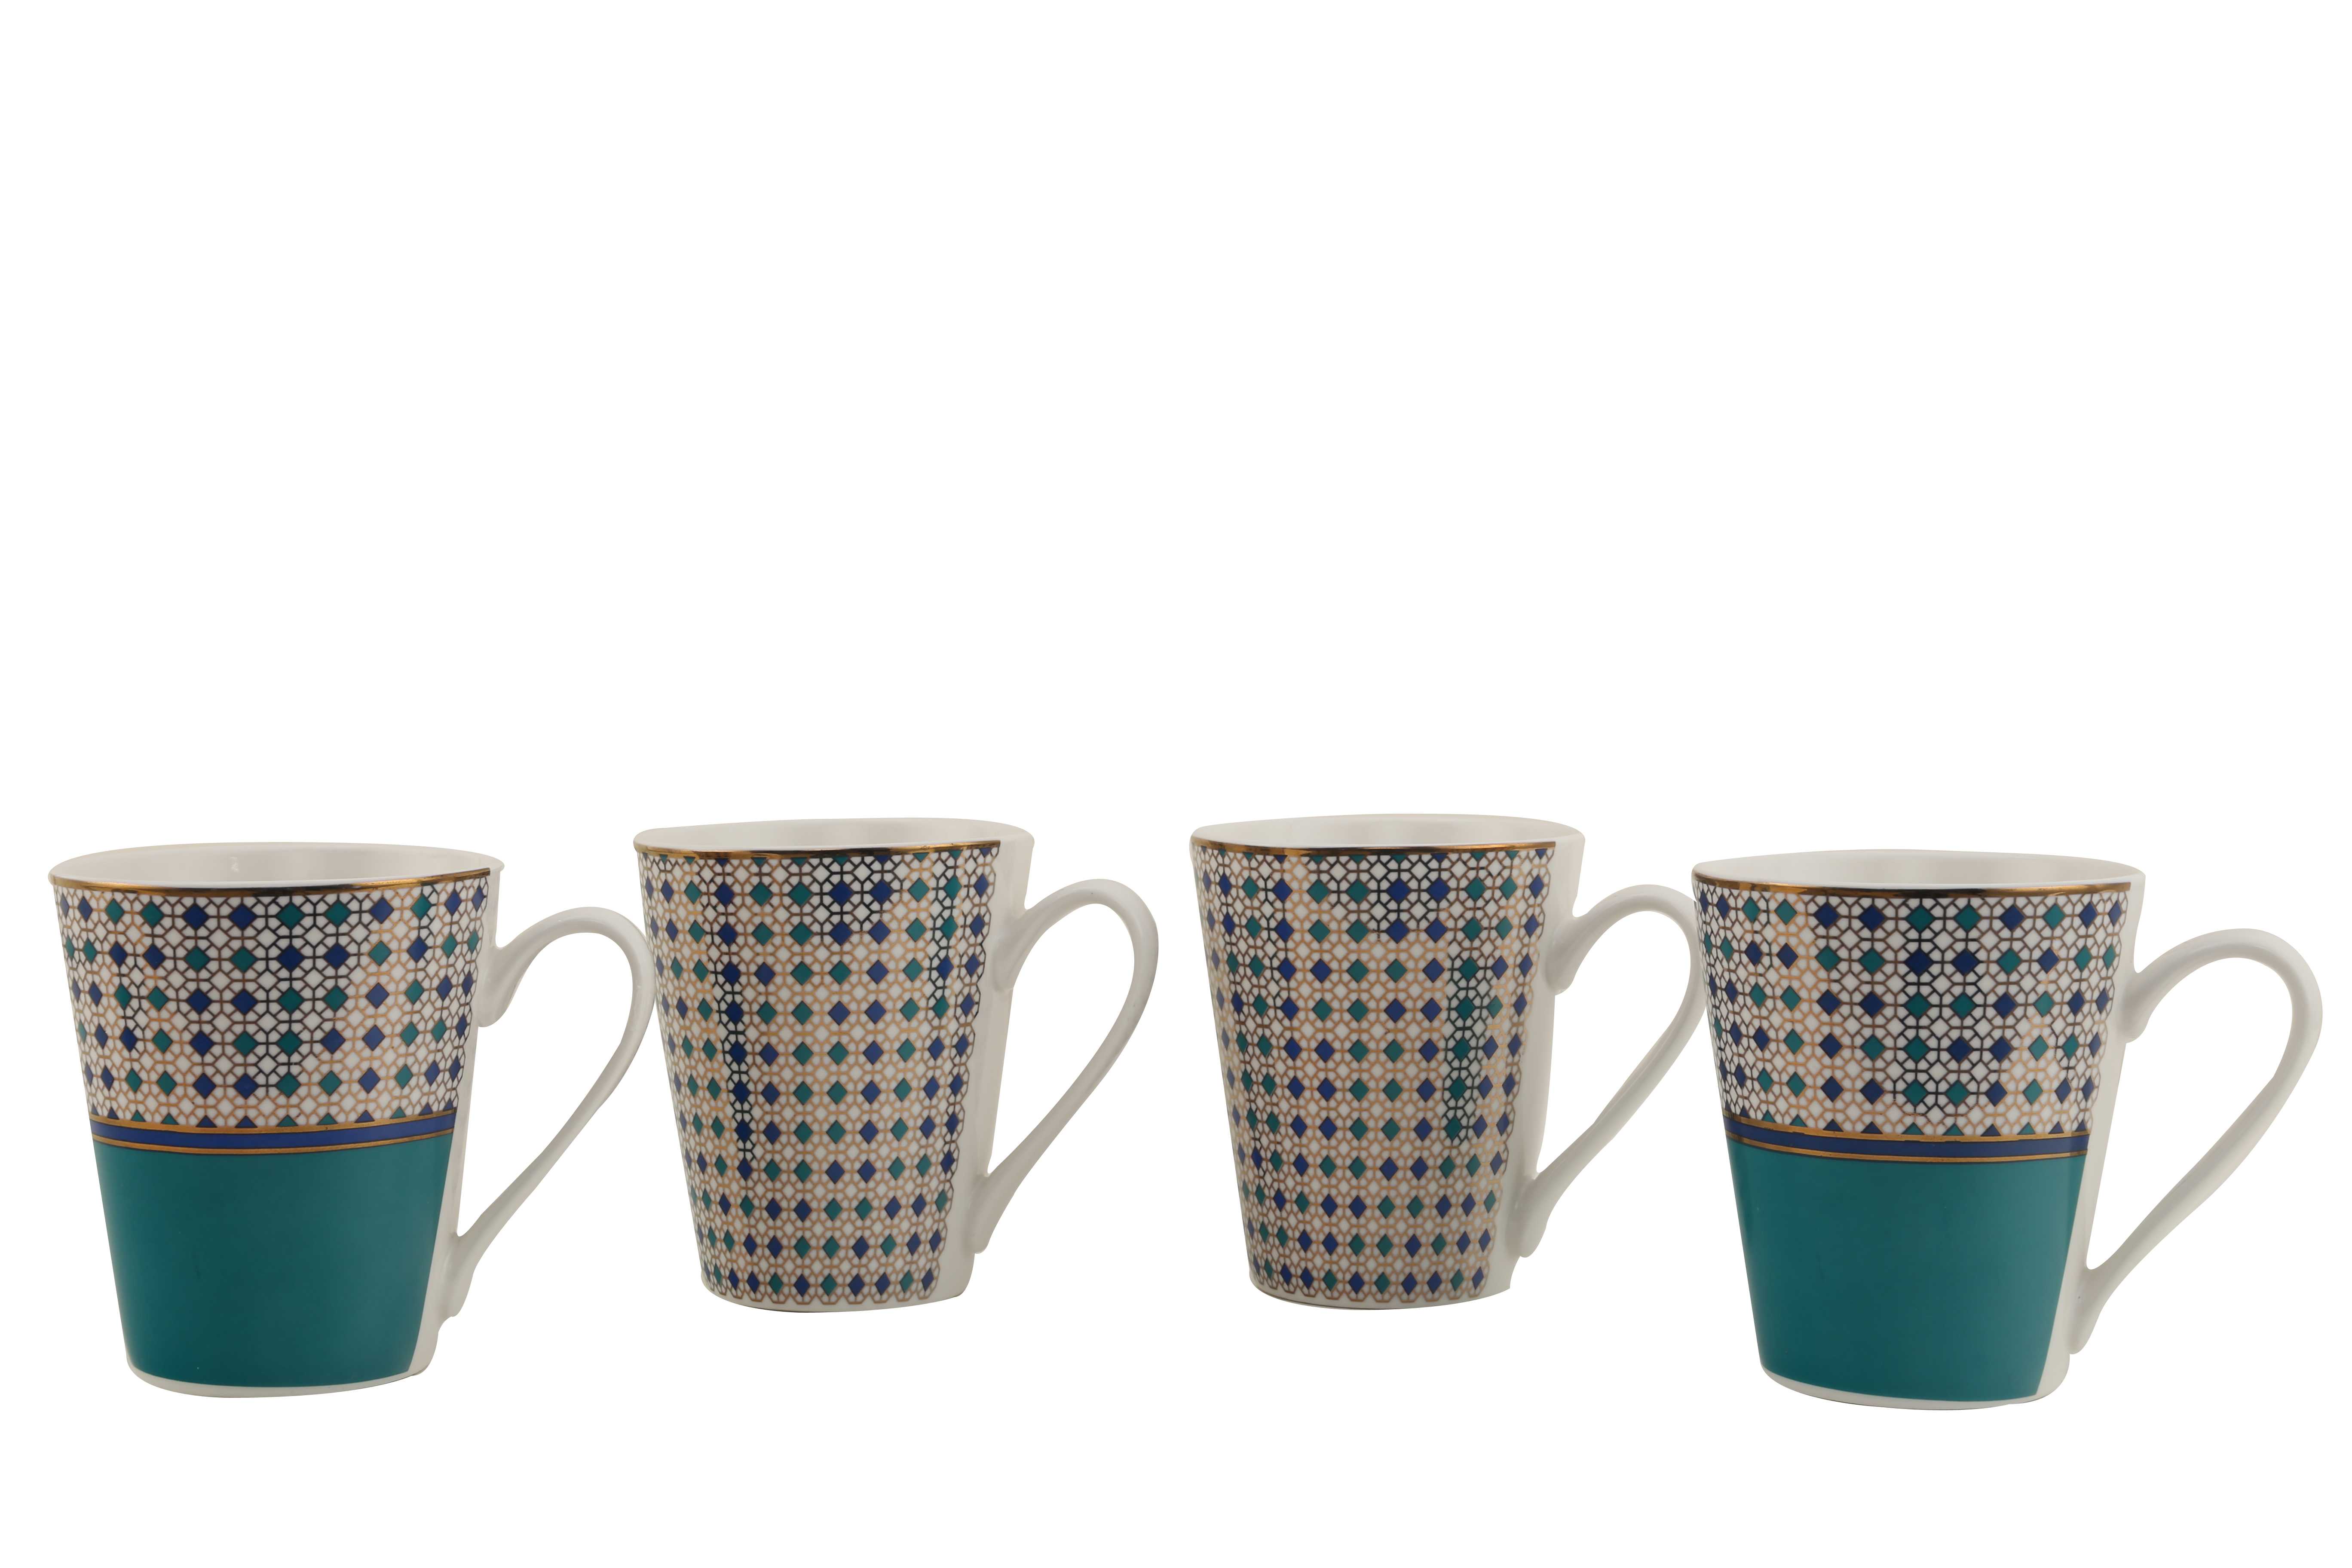 Panache Set Of Four Ceramic Coffee Mugs in Blue With Gold Colour by HomeTown